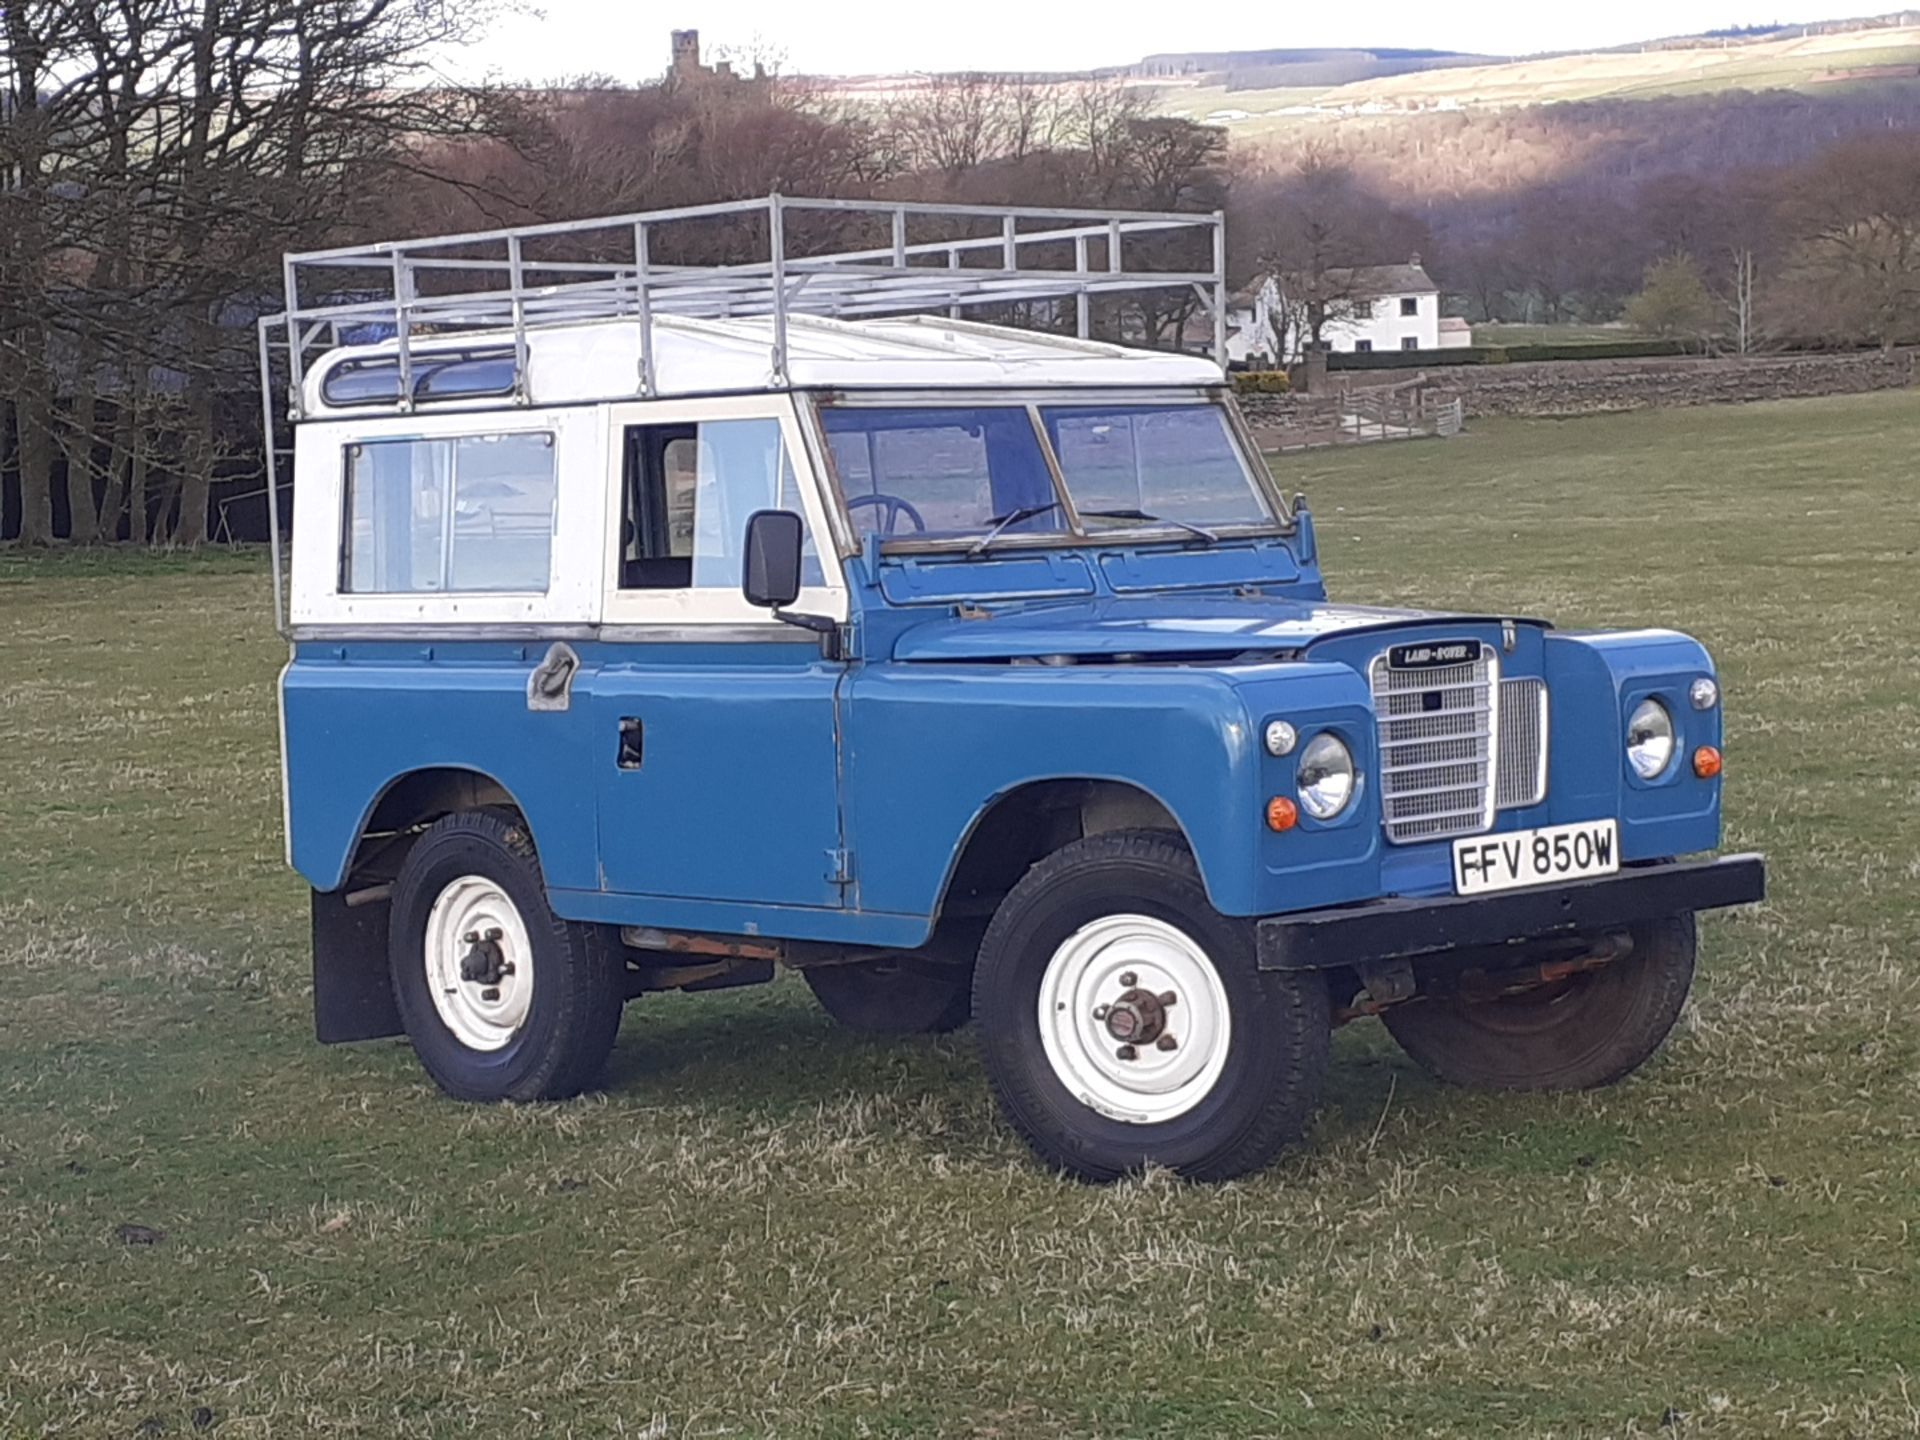 1980 LAND ROVER SERIES III CLASSIC STATION WAGON, TAX AND MOT EXEMPT *NO VAT* - Image 13 of 22